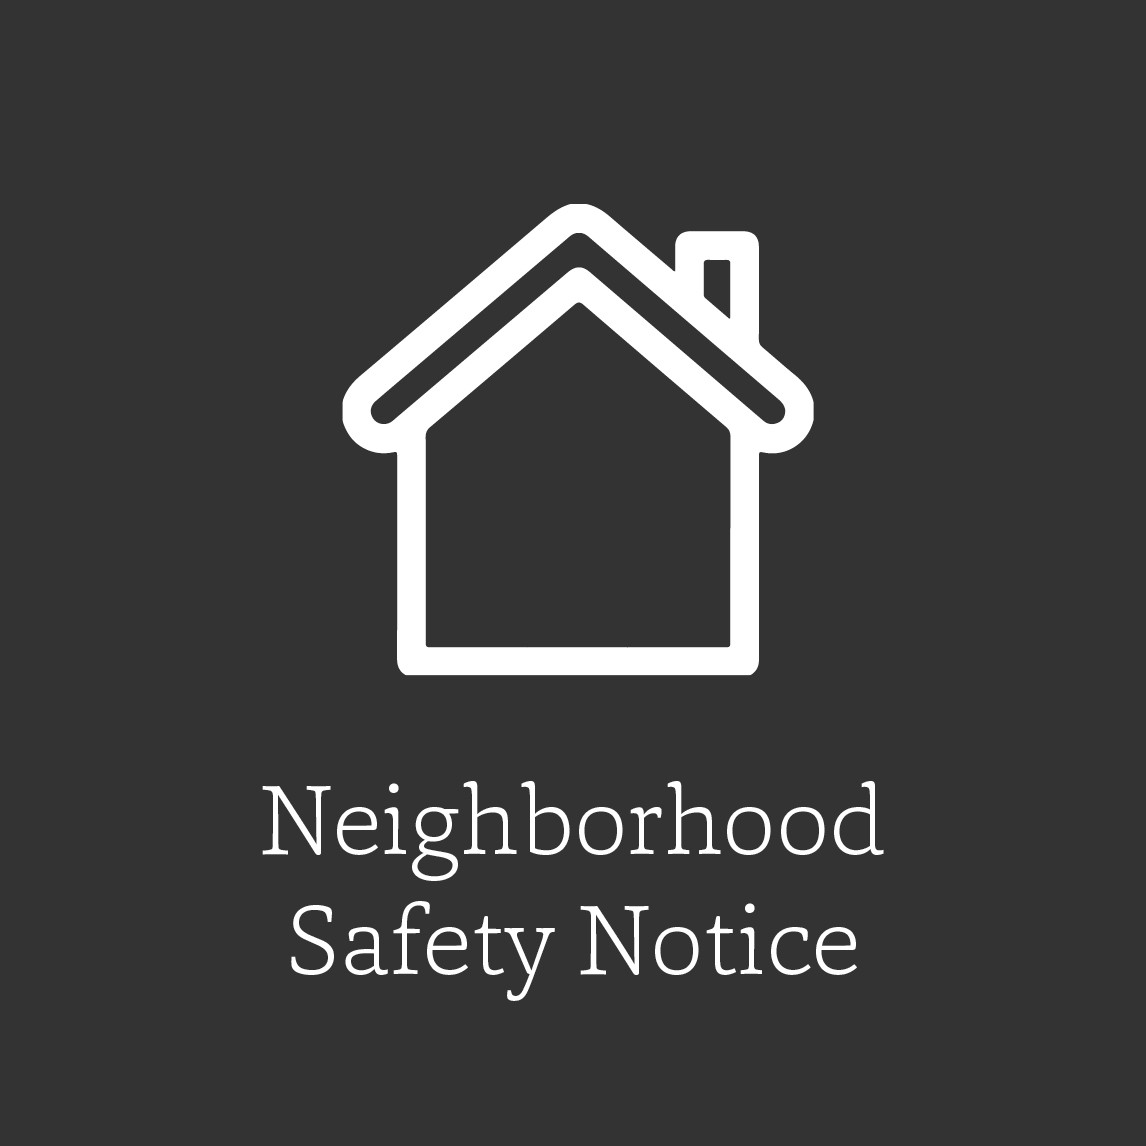 tile graphic for neighborhood safety notice, house with chimney